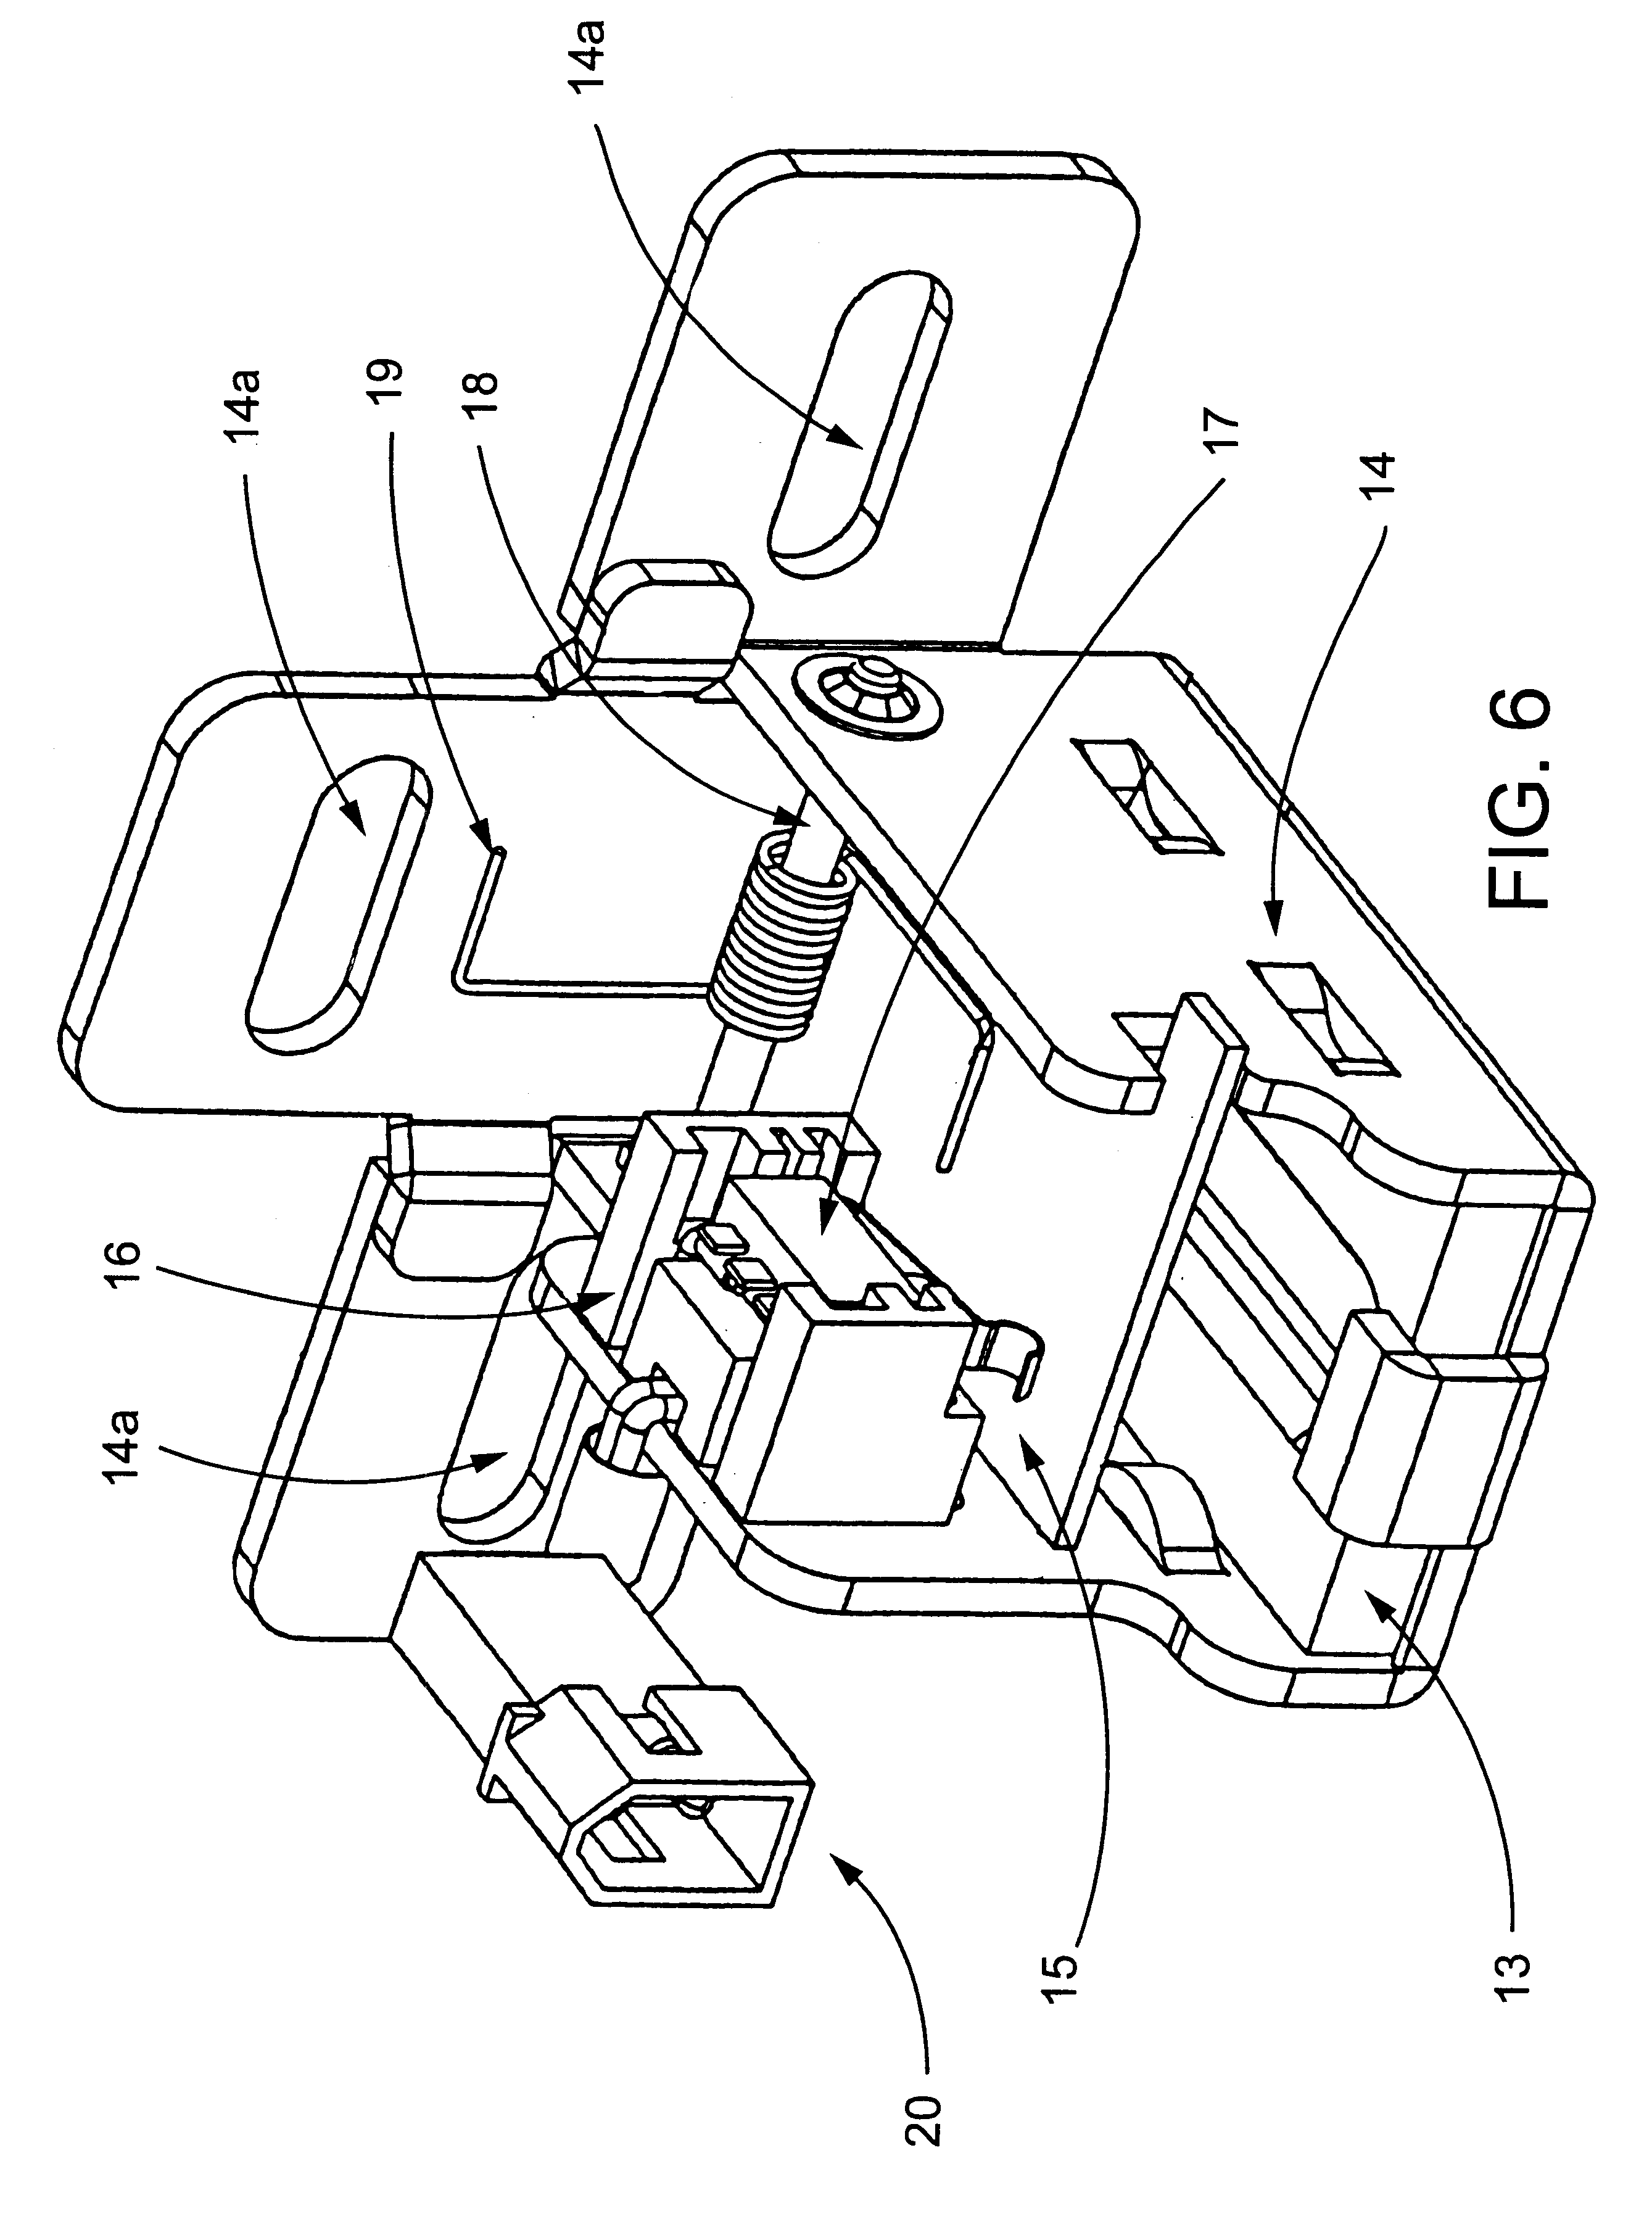 patent us6581986 - bayonet locking system and method for vending machines and the like